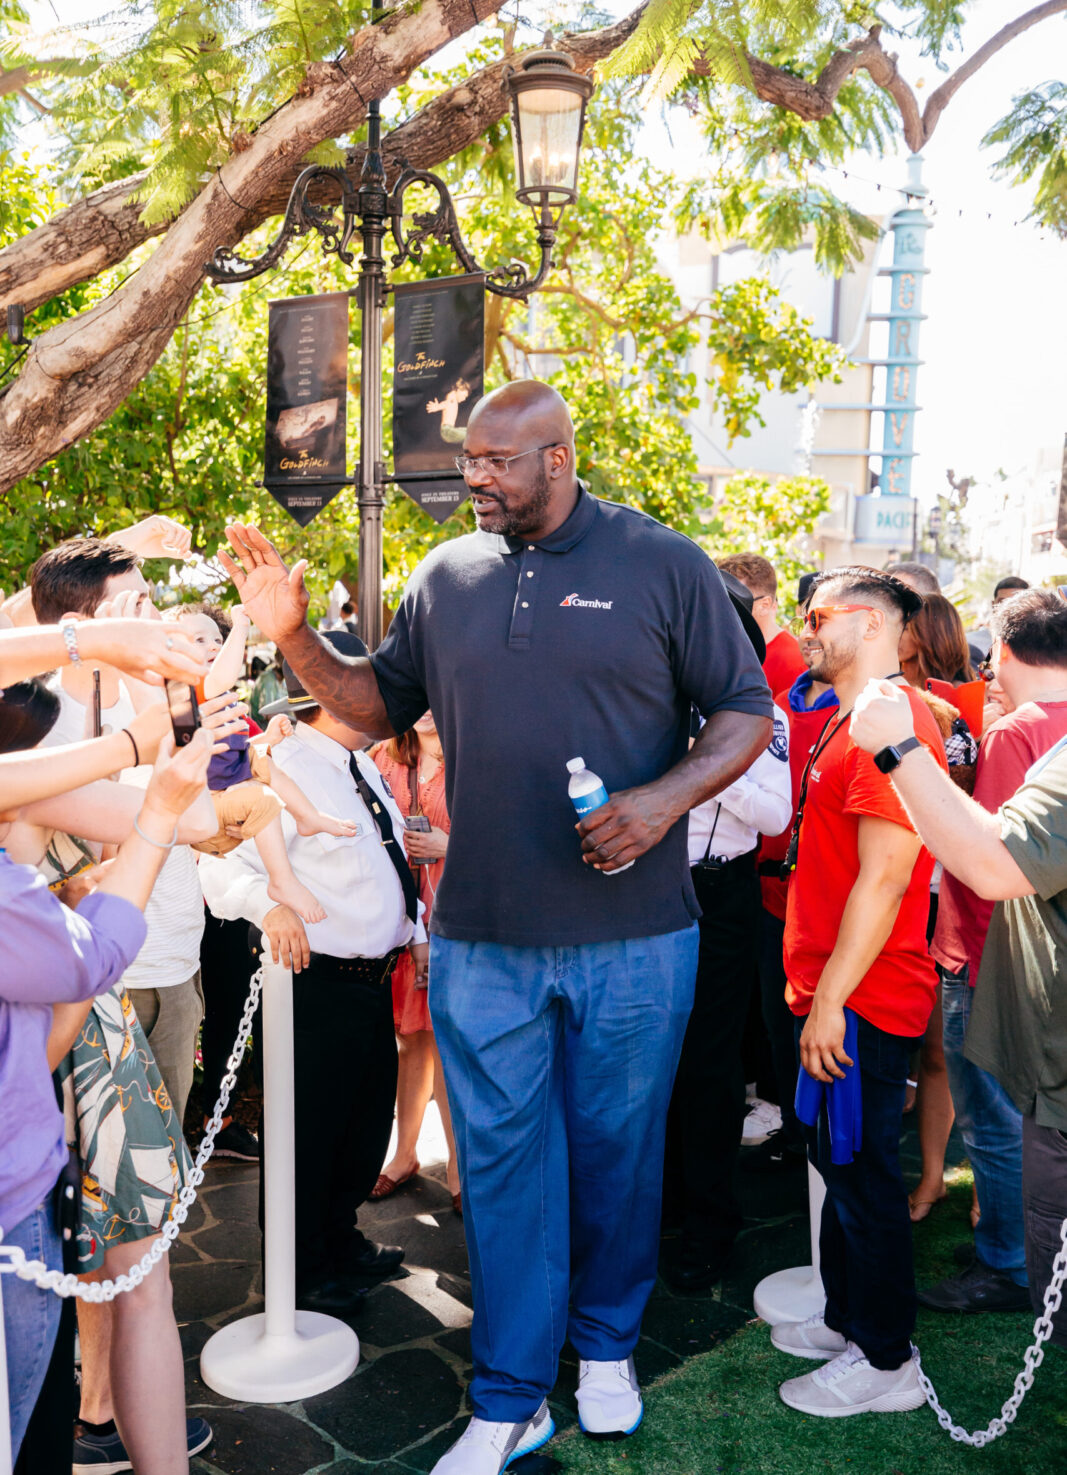 shaq high fiving customers at carnival event production company